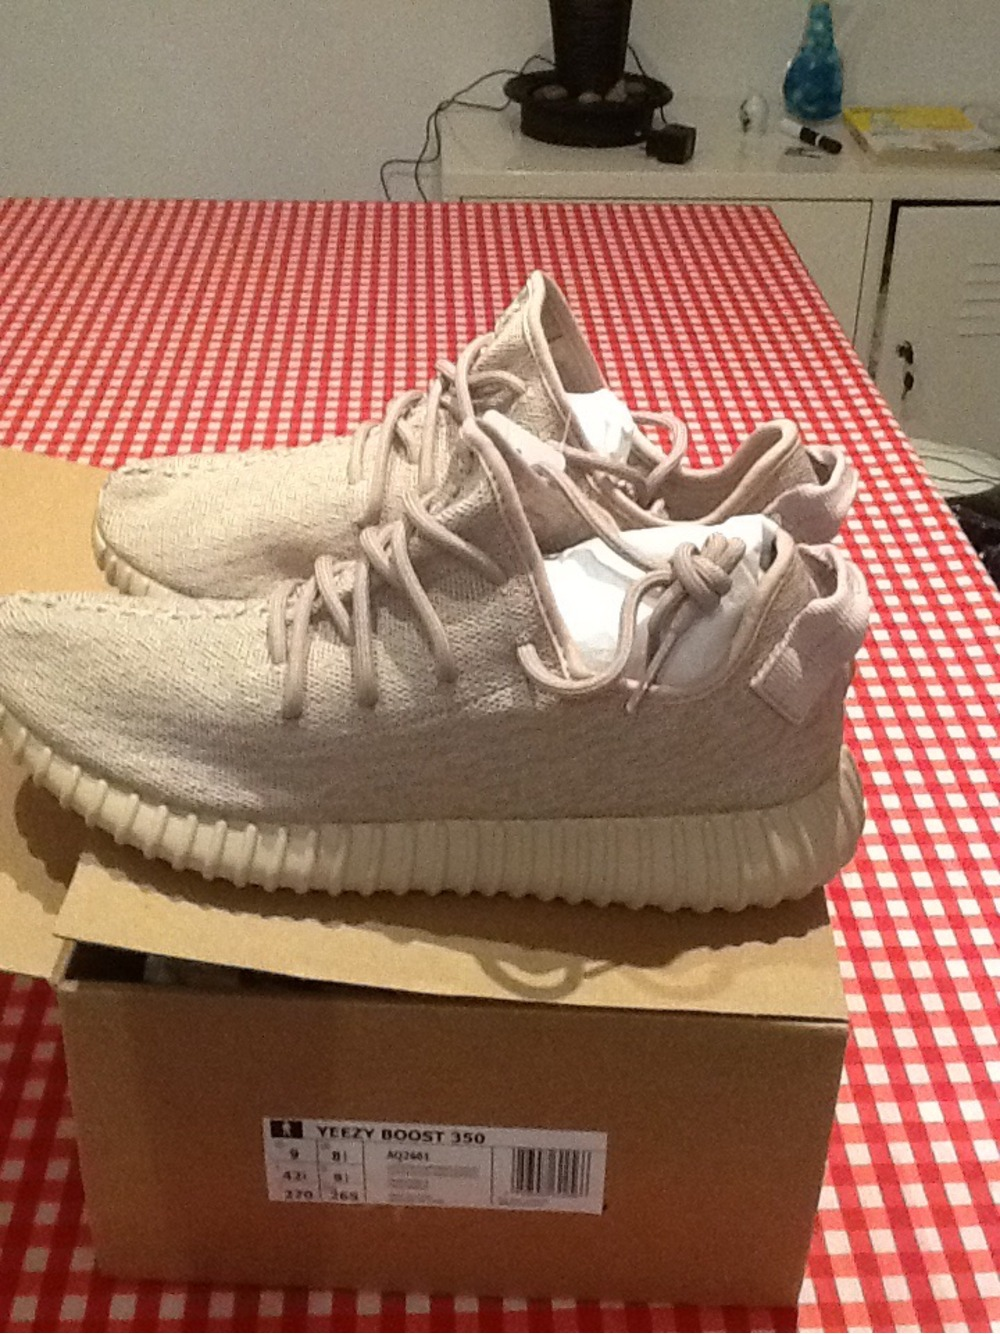 yeezy boost shoes oxford tan yeezy yeezy boost 350 v2 black and white on feet